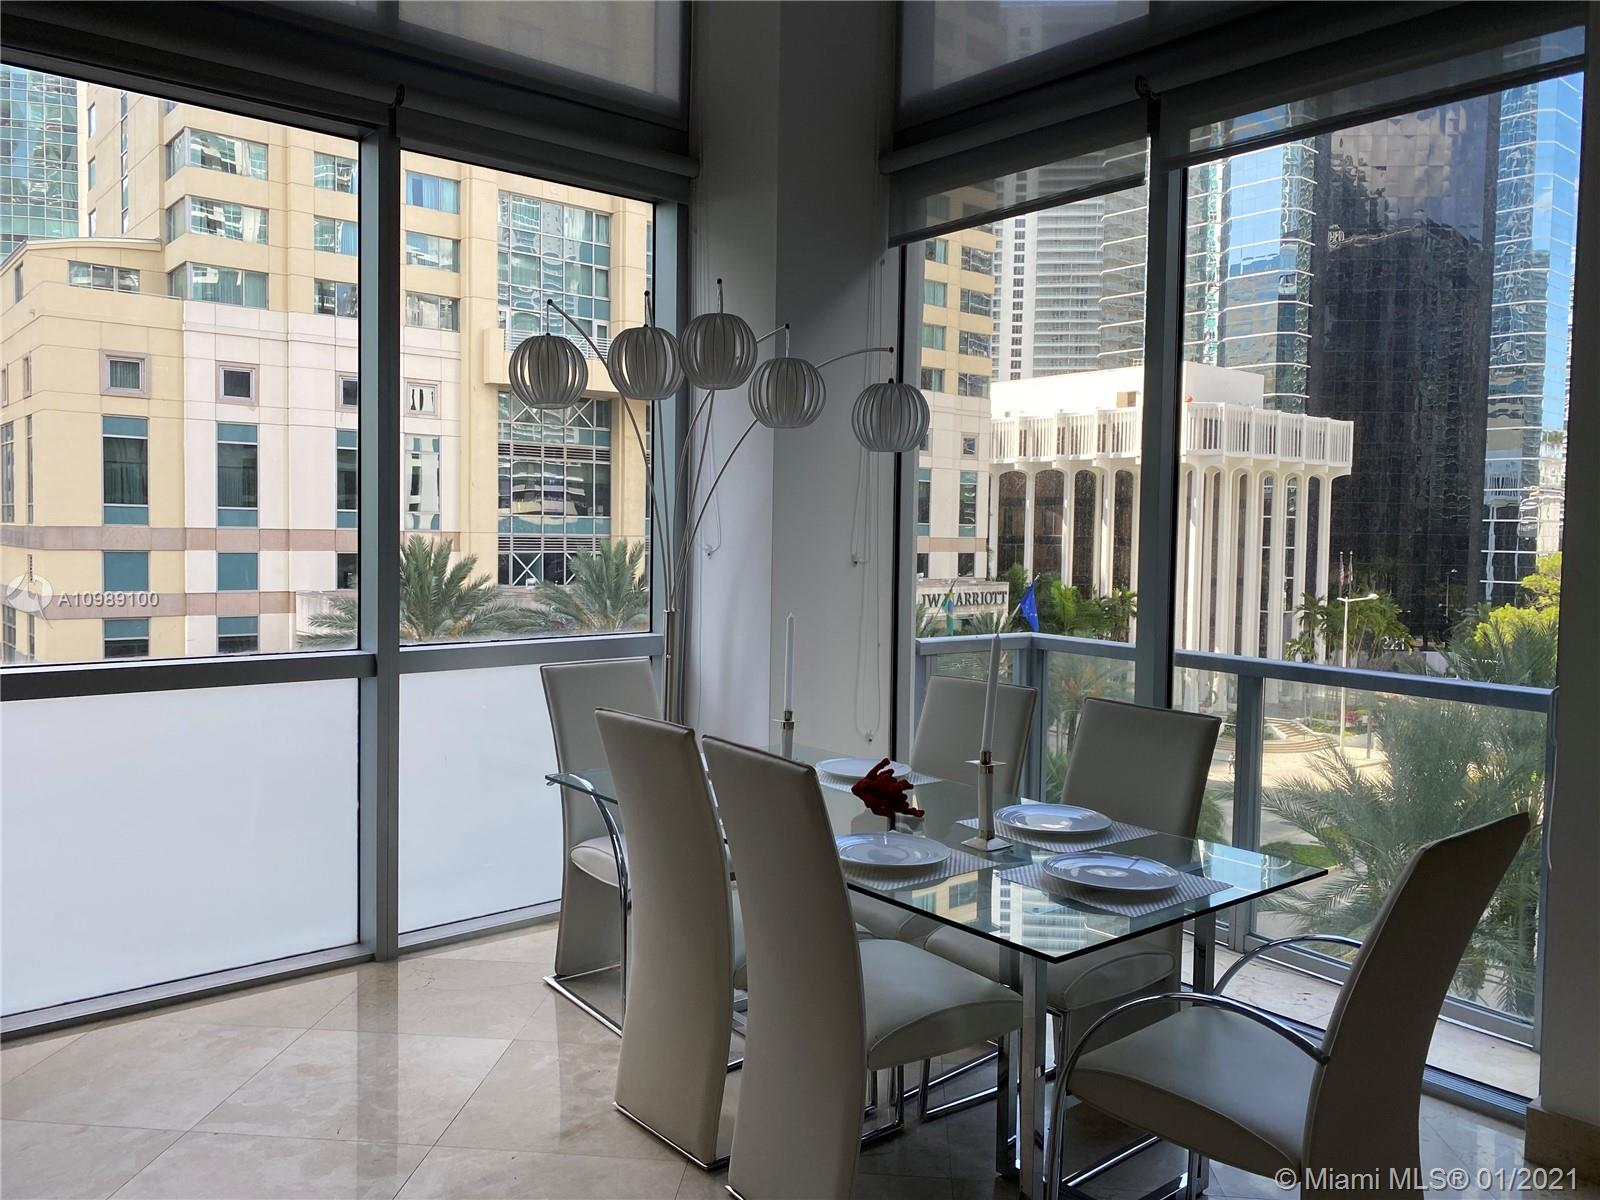 Beautiful two story loft, 18' Foot ceiling, marble throughout the apartment, city views, in the heart of Brickell. Amenities to enjoy include: pool with sundeck, state of the art fitness center, virtual golf room, wine & cigar lounge, family room, spa treatment rooms, yoga/aerobic room, game room with billiard table, lounge and party room with catering kitchen. THIS UNIT COMES WITH TWO PARKING SPACES ASSIGNED, NEXT TO EACH OTHER ON THE 4th FLOOR, YOU CAN WALK TO YOUR UNIT FROM YOUR PARKING SPACES!!!